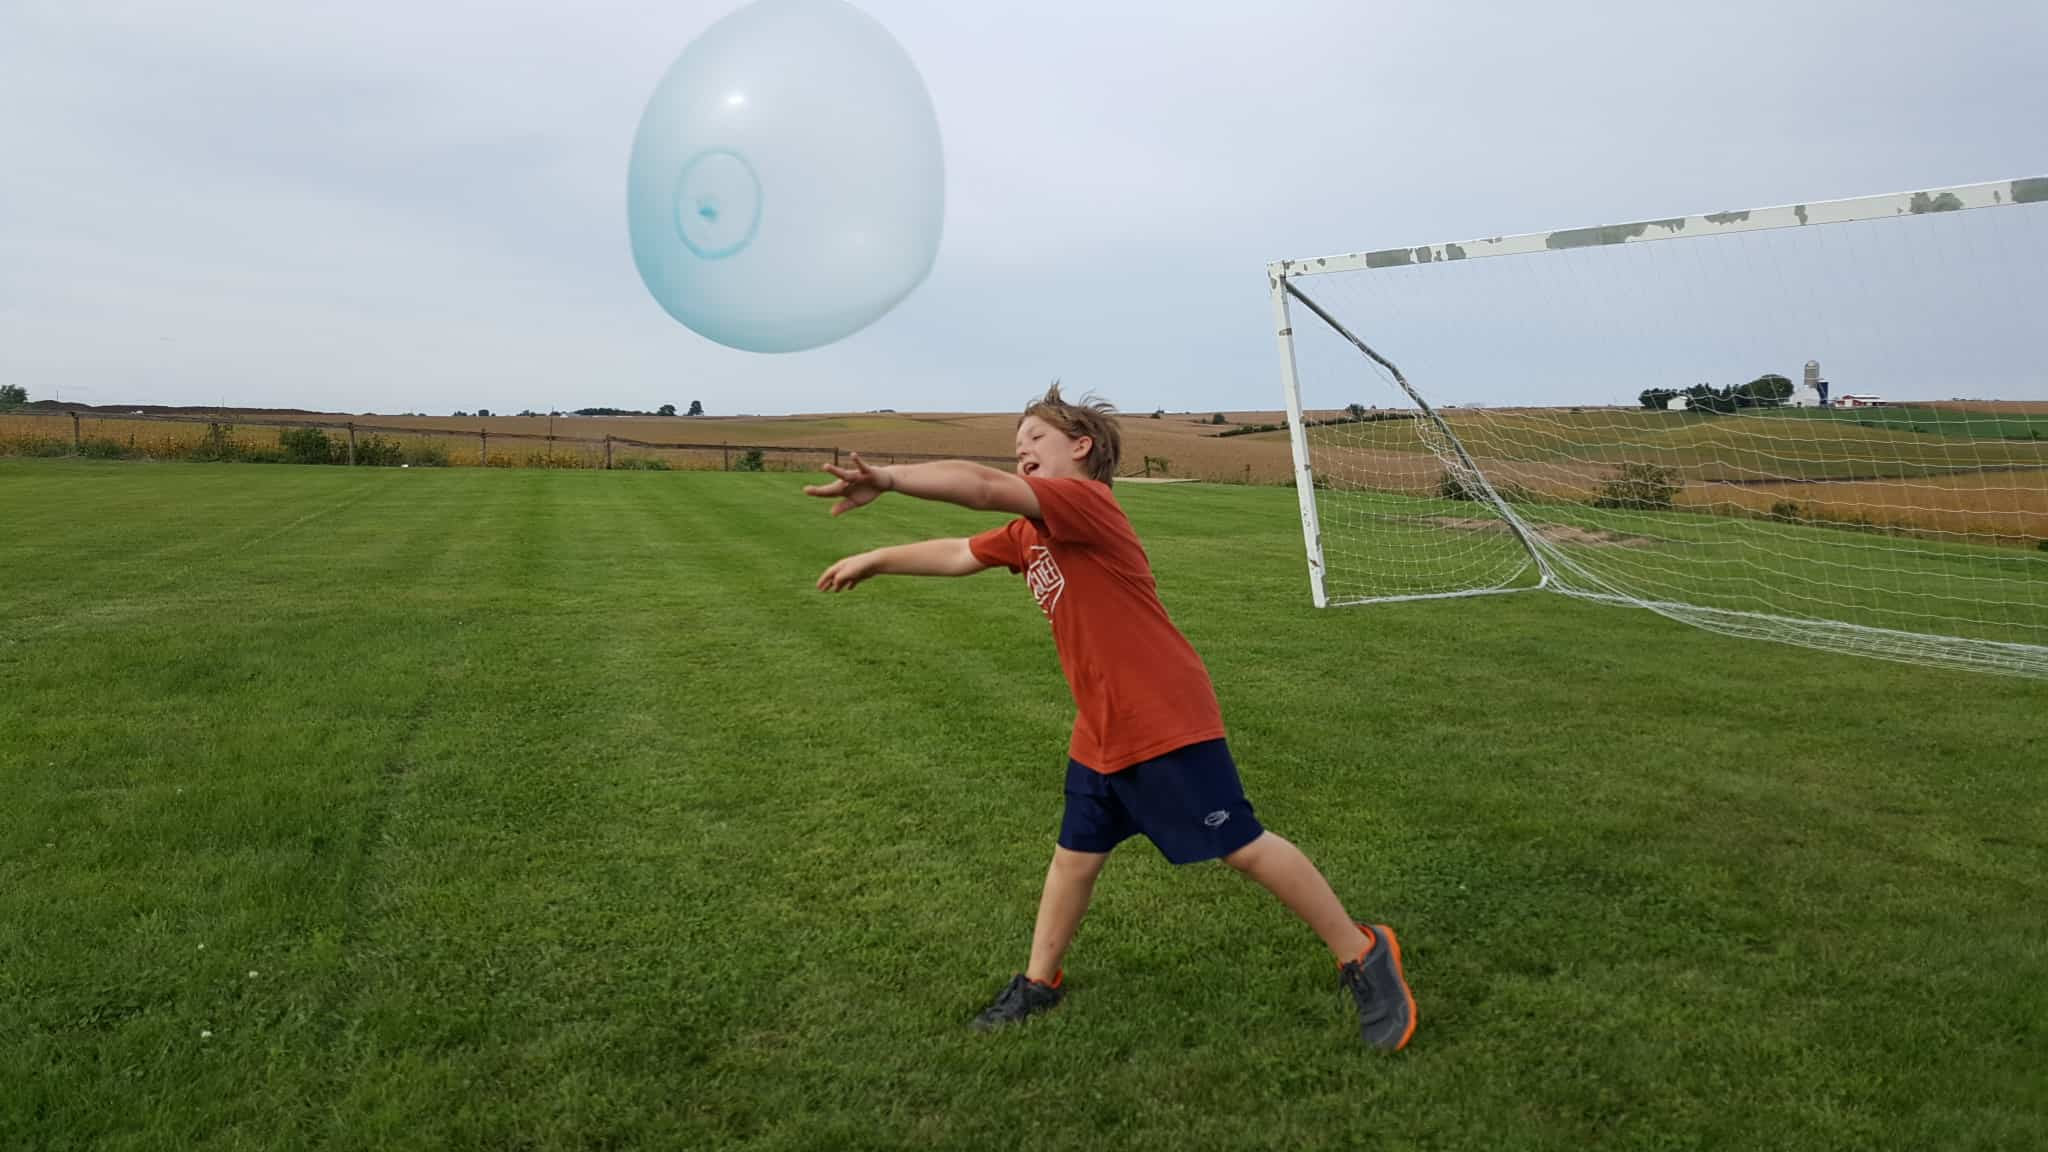 Super Wubble Bubble ball review